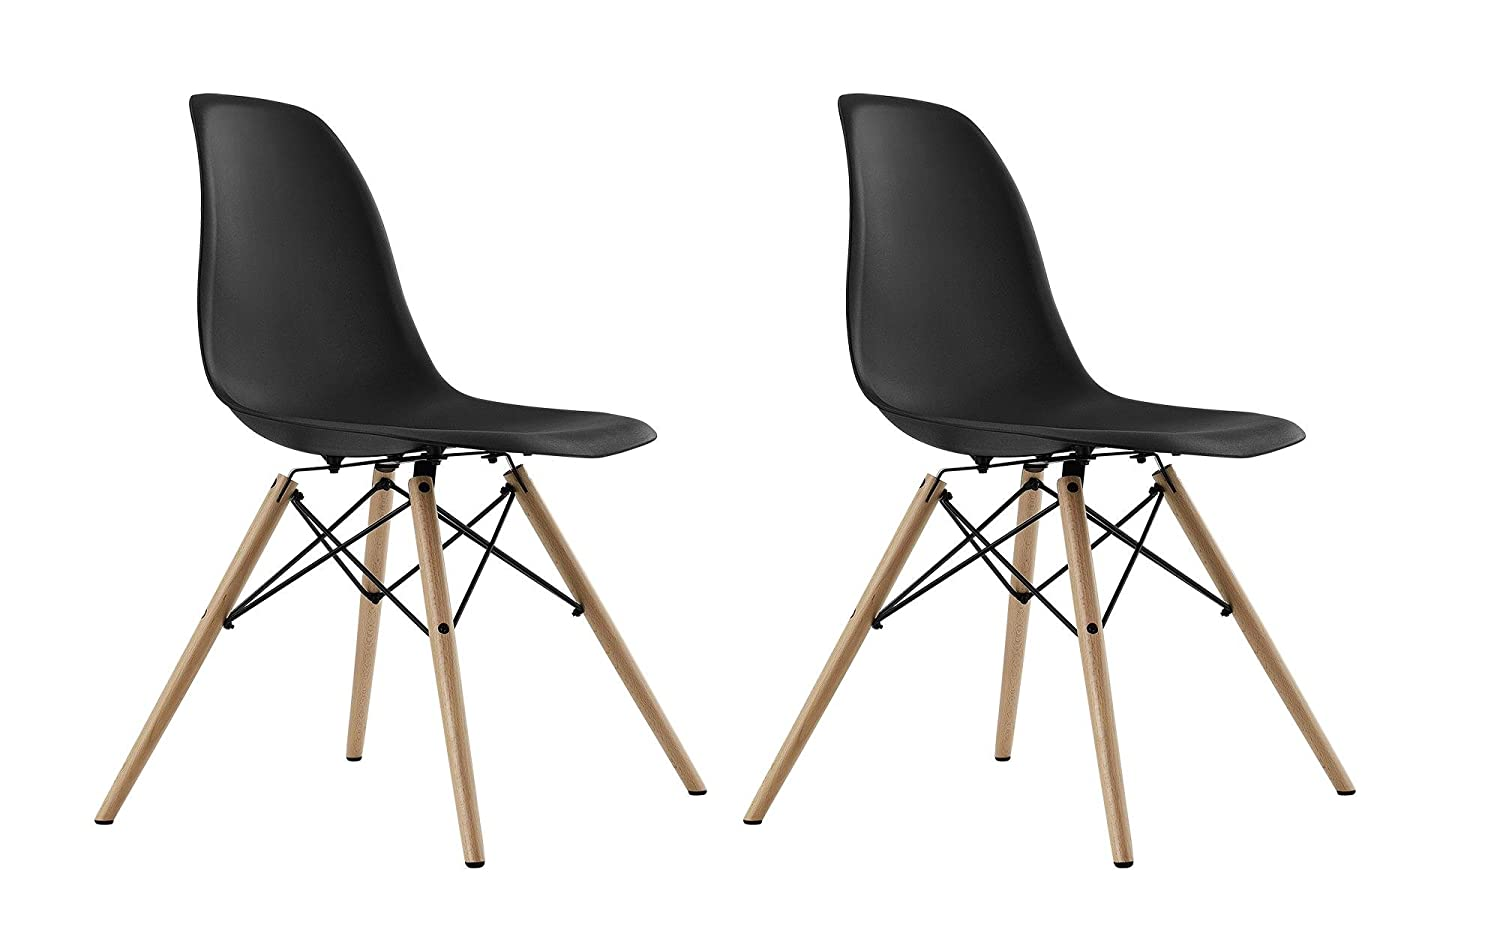 Beau Amazon.com: DHP Mid Century Modern Chairs With Wood Legs, Black, Set Of 2:  Kitchen U0026 Dining